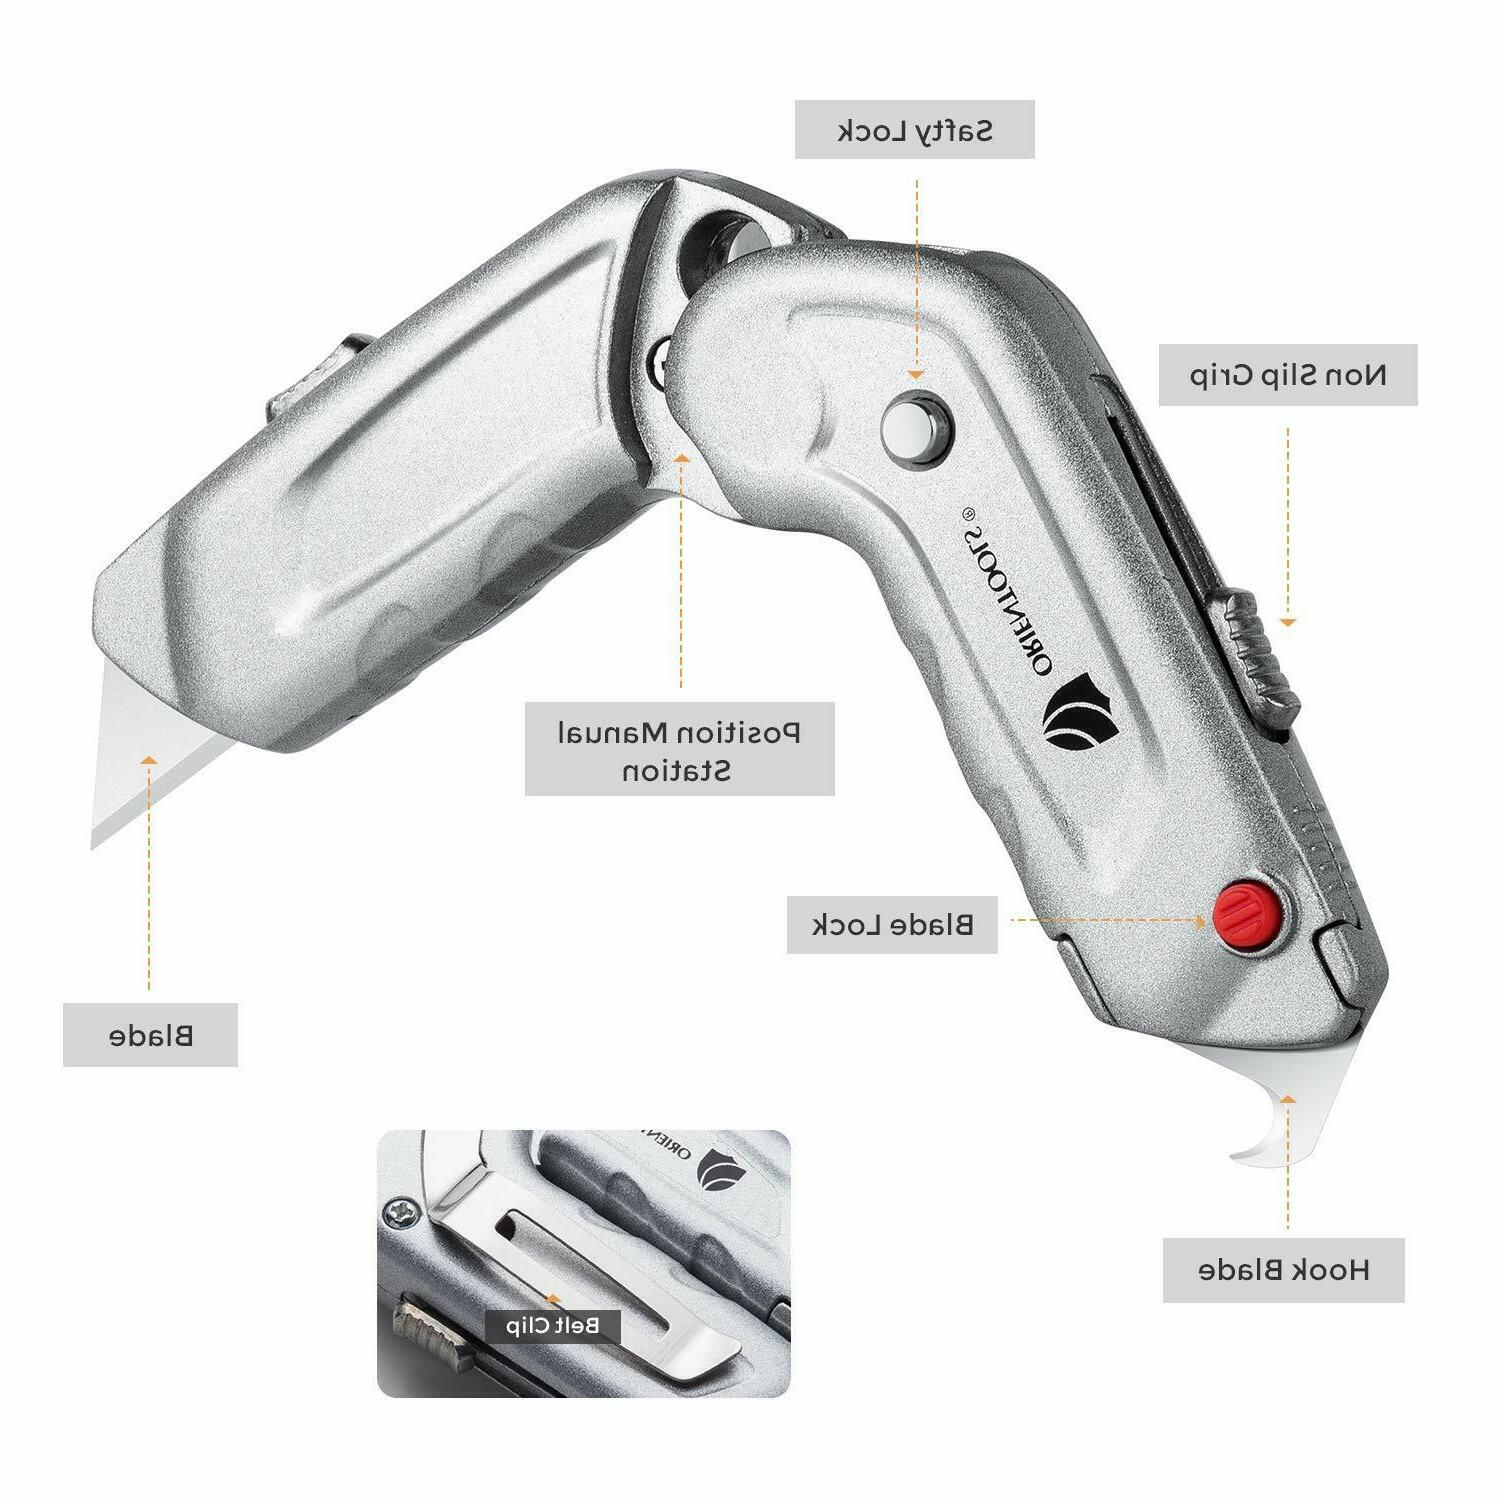 ORIENTOOLS Knife Cutter